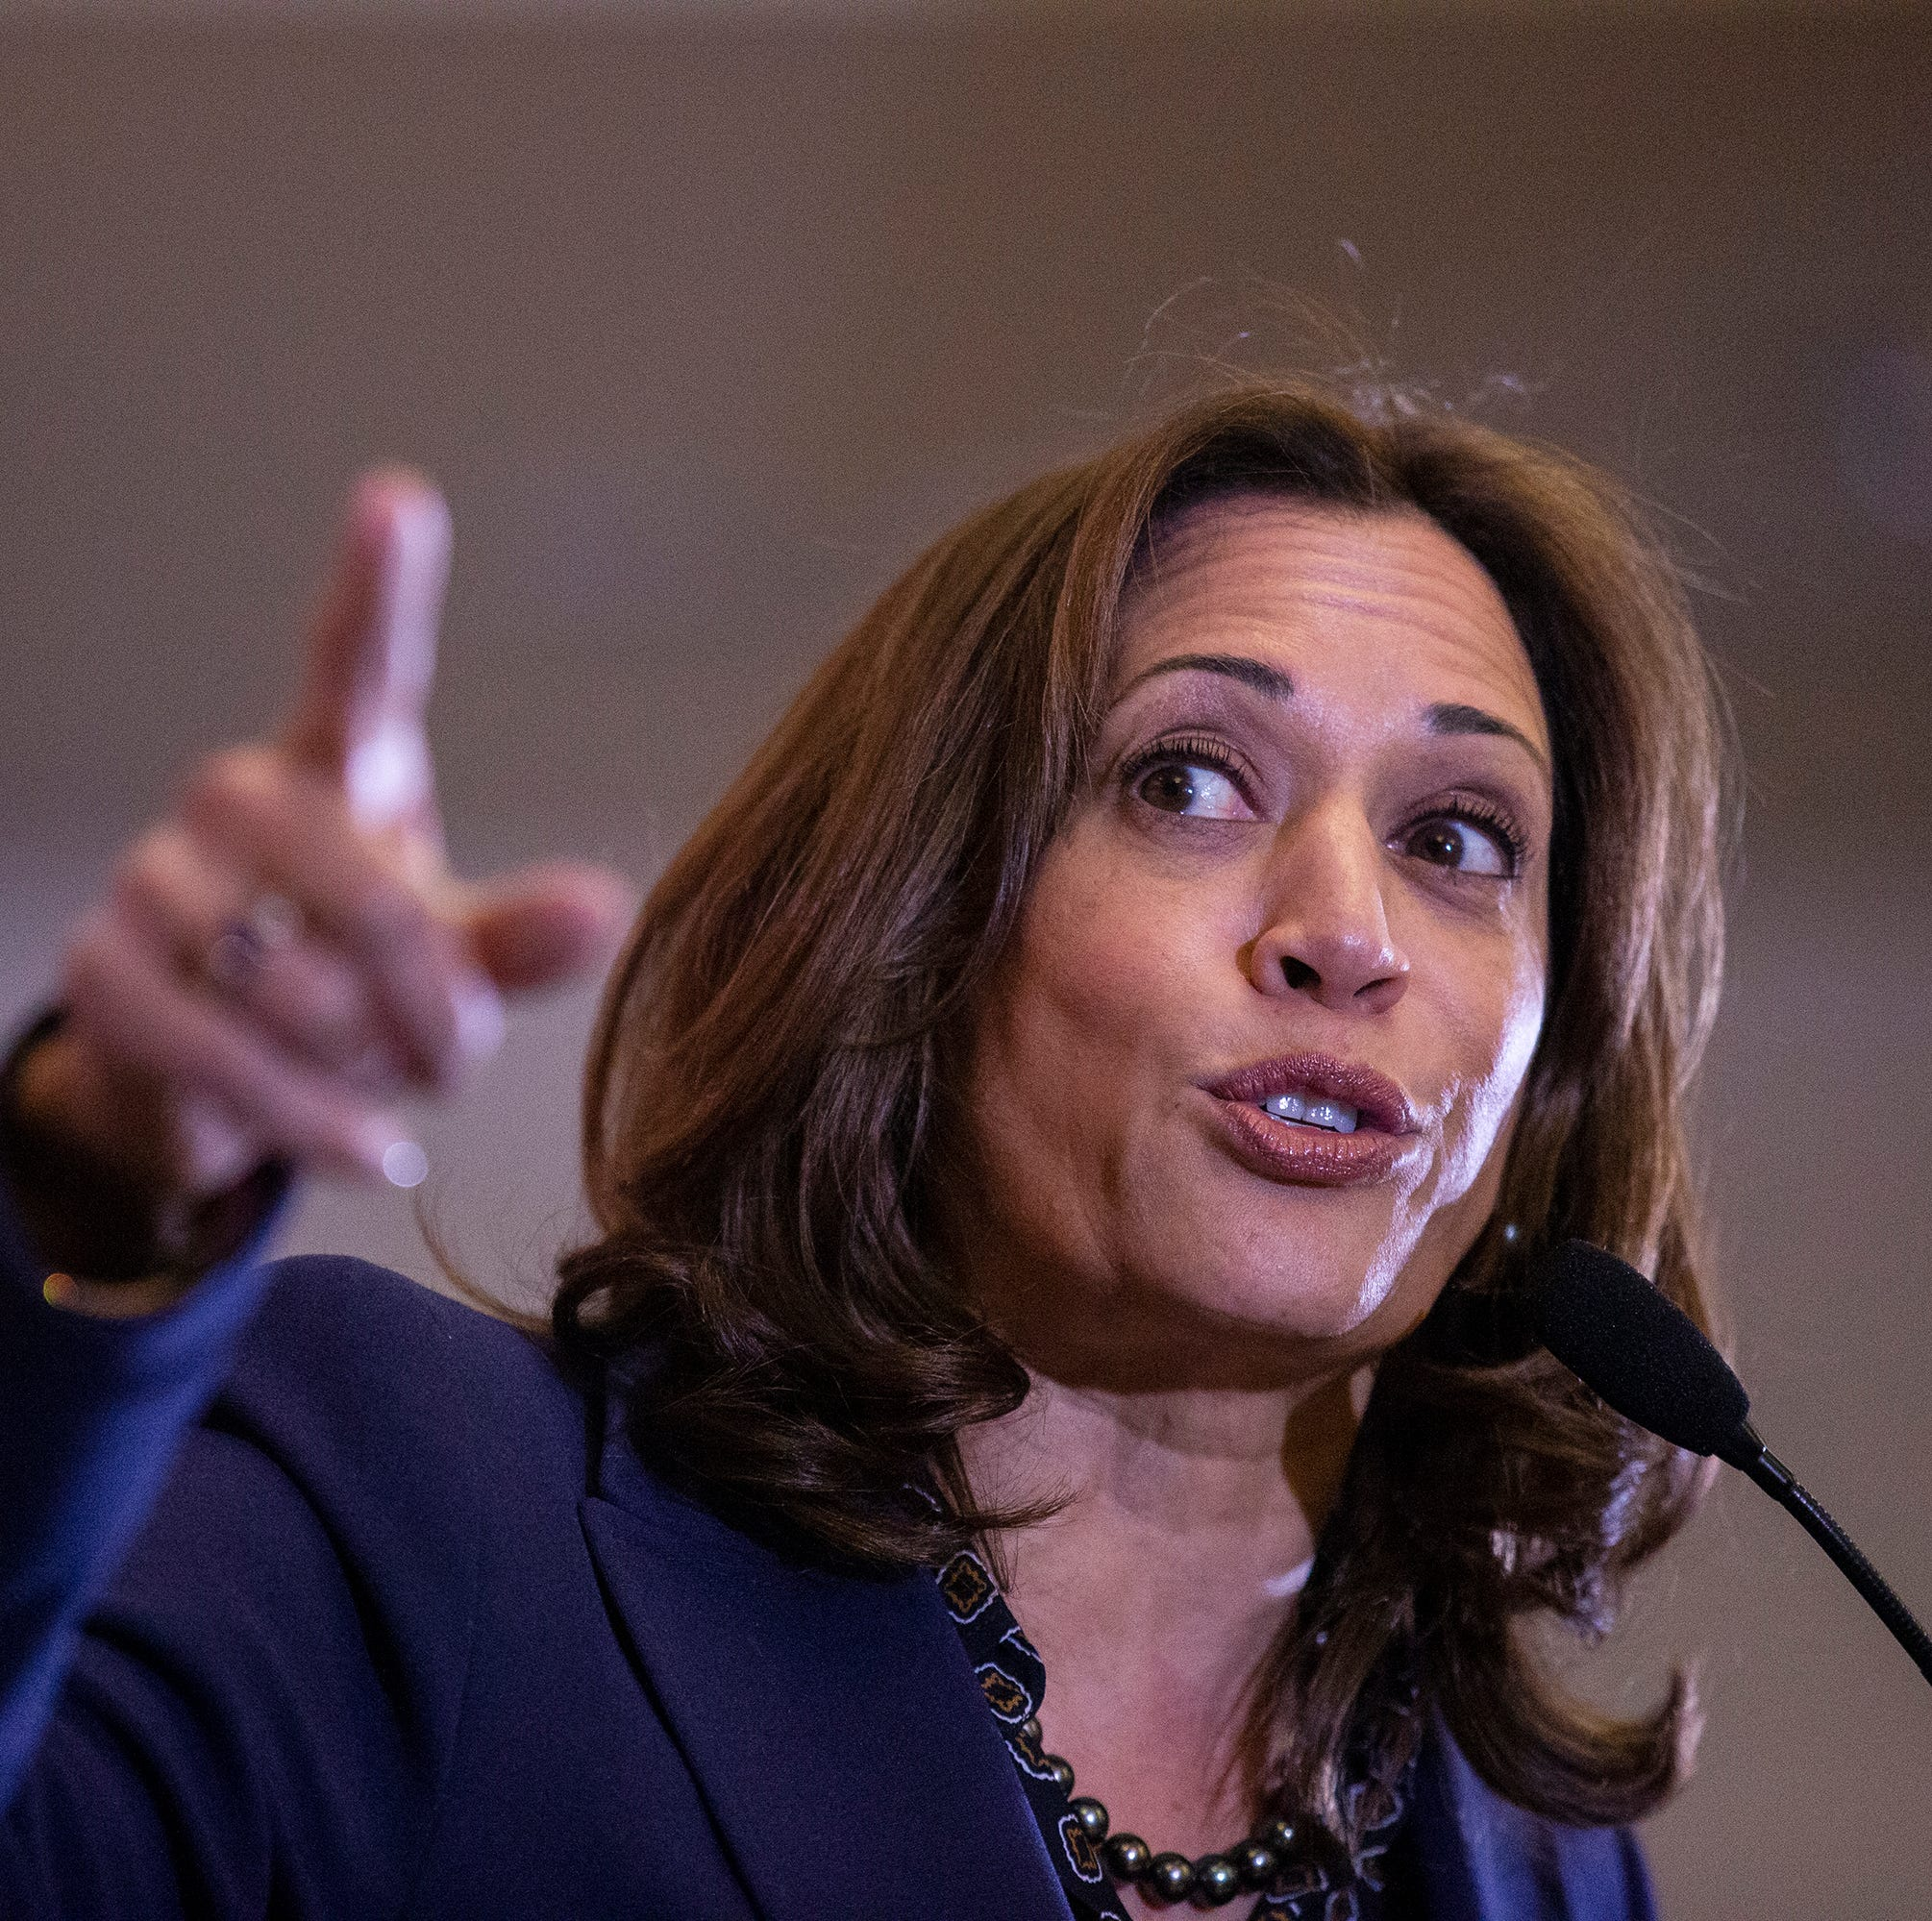 Kamala Harris' passion, optimism, warmth may be the antidote to Trump's snide divisiveness